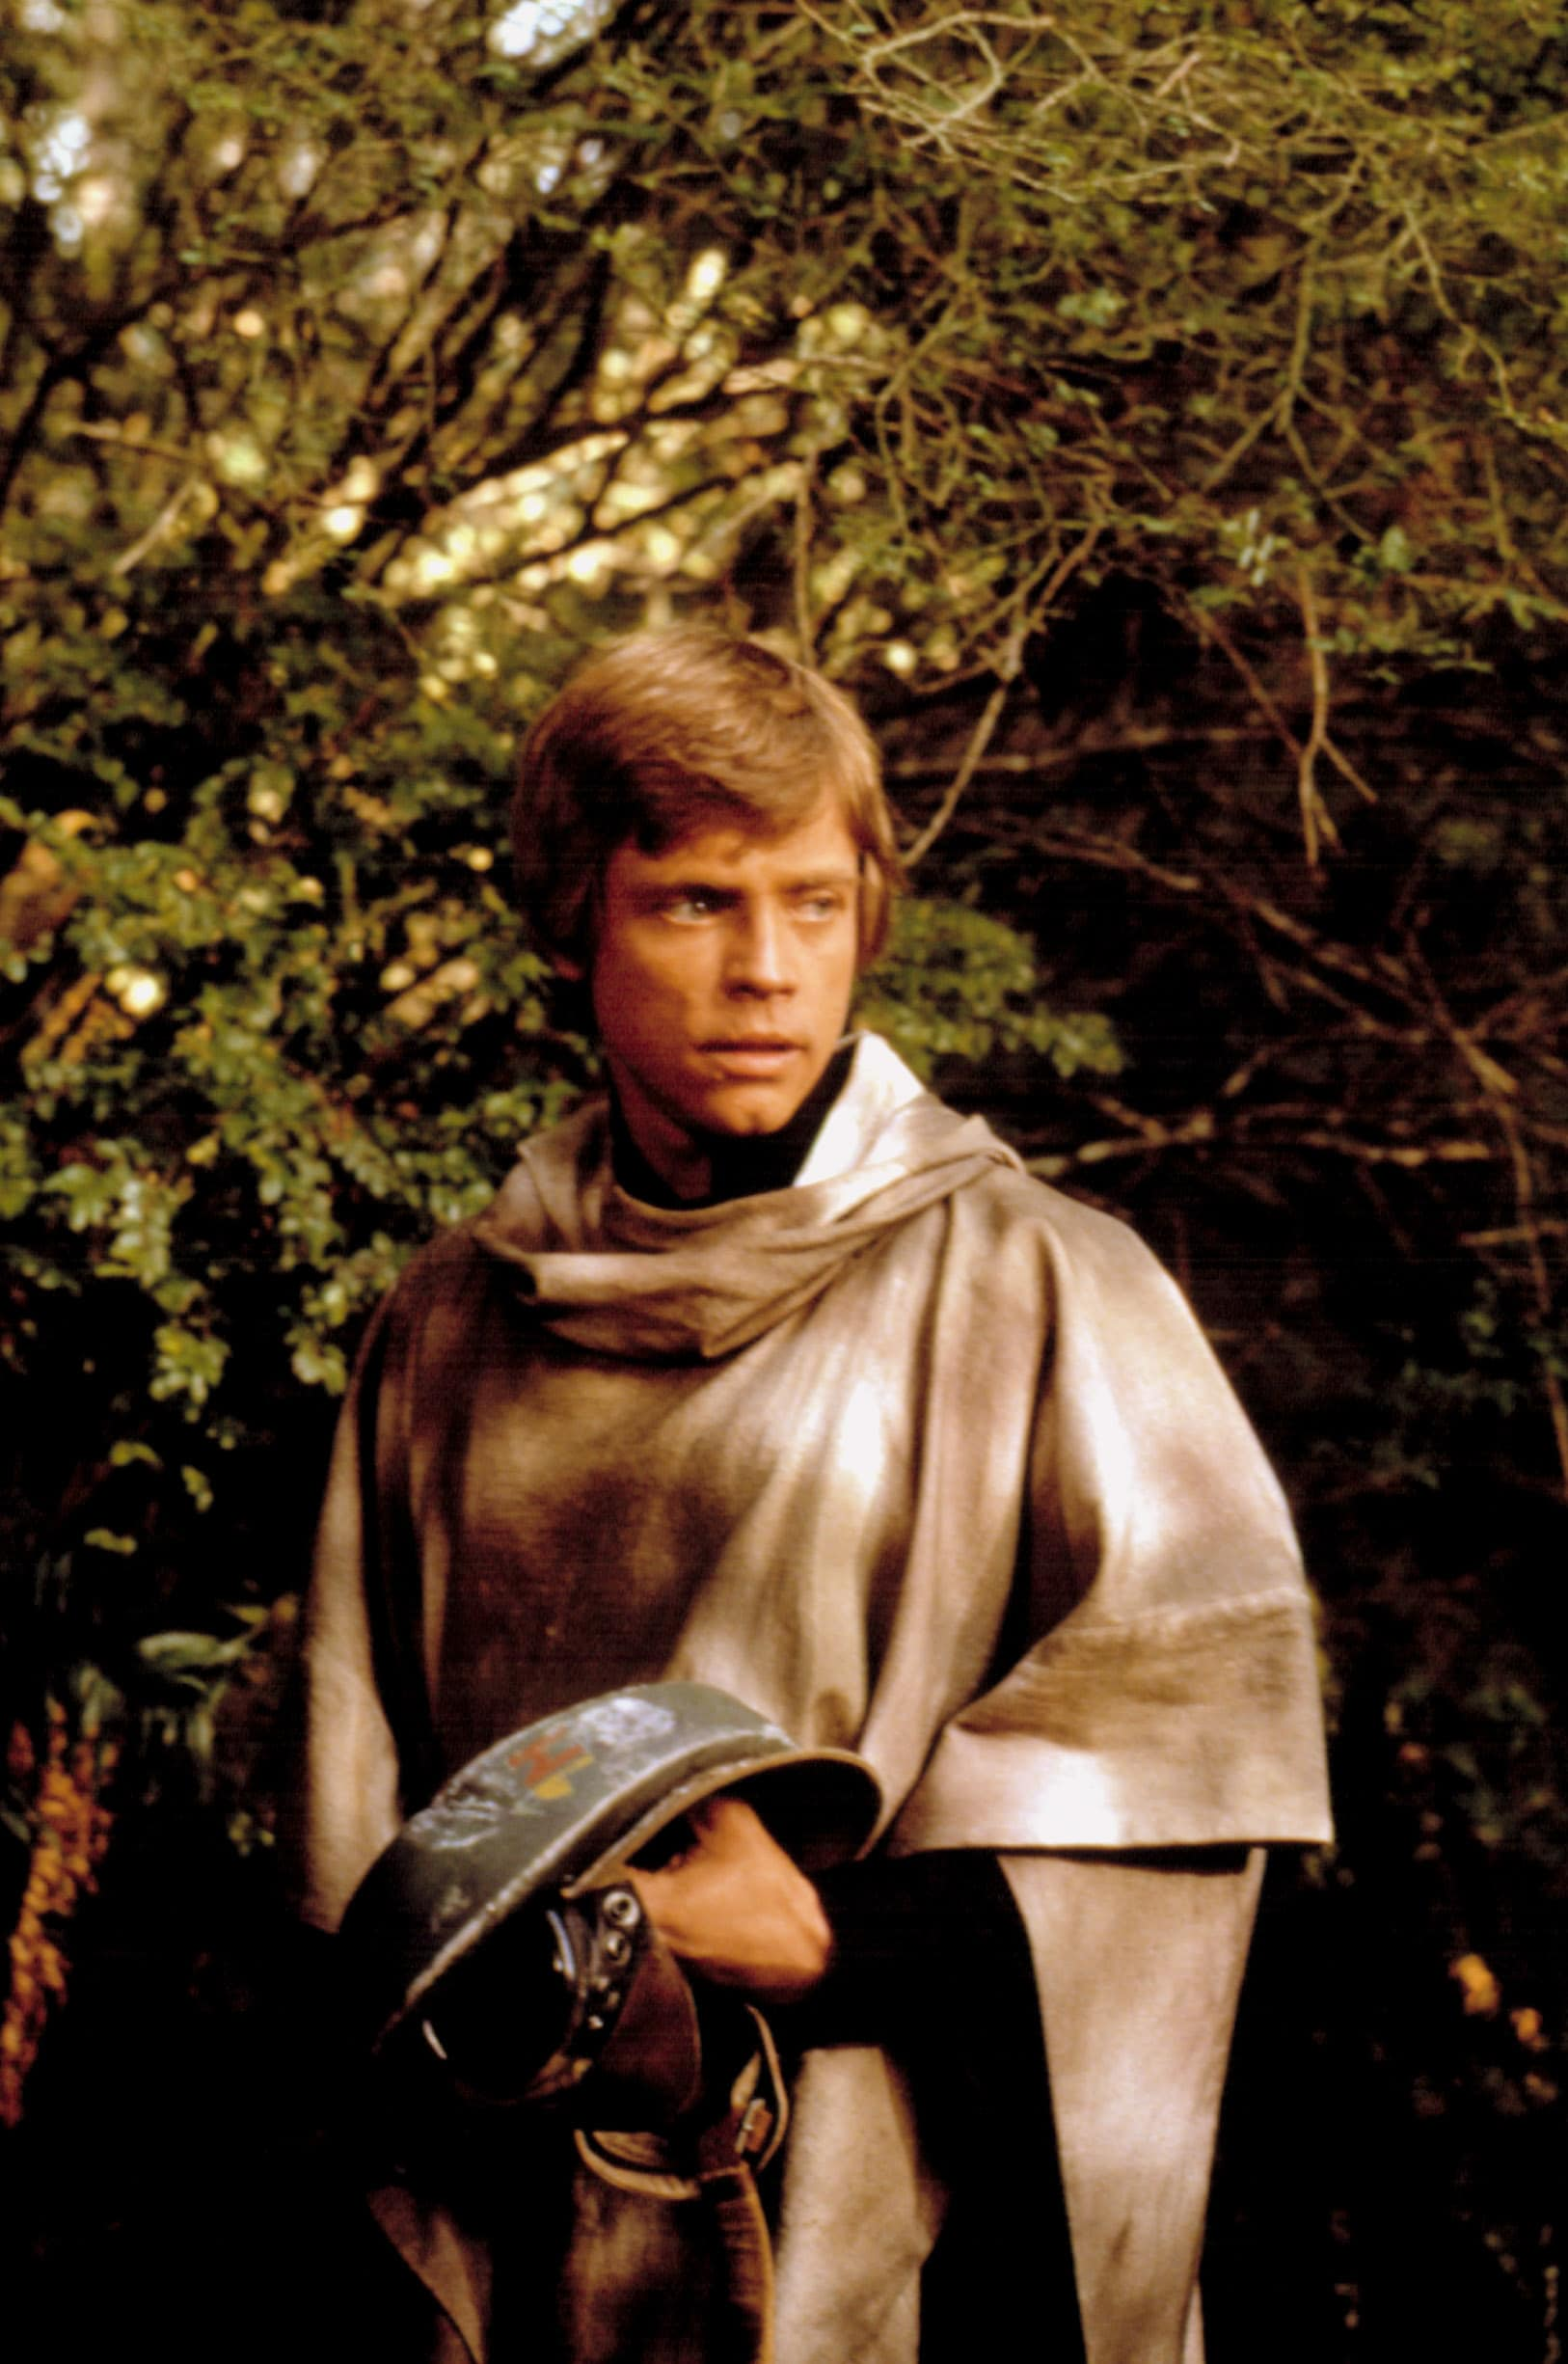 STAR WARS: EPISODE VI - RETURN OF THE JEDI, Mark Hamill